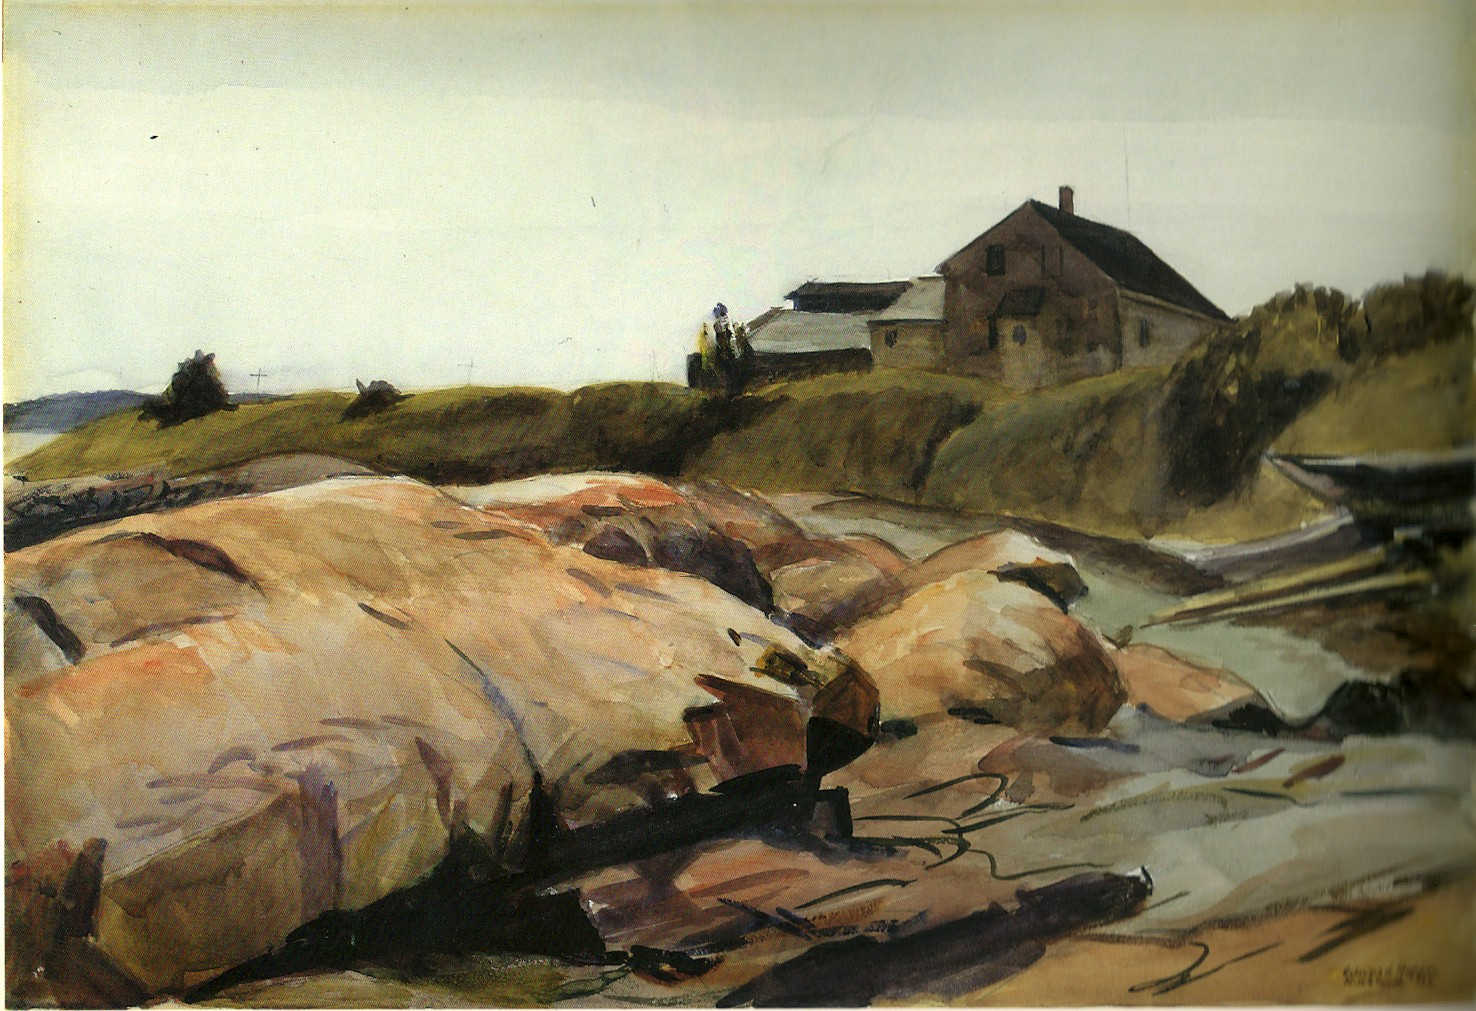 Harbor Shore, Rockland (1926) - Edward Hopper